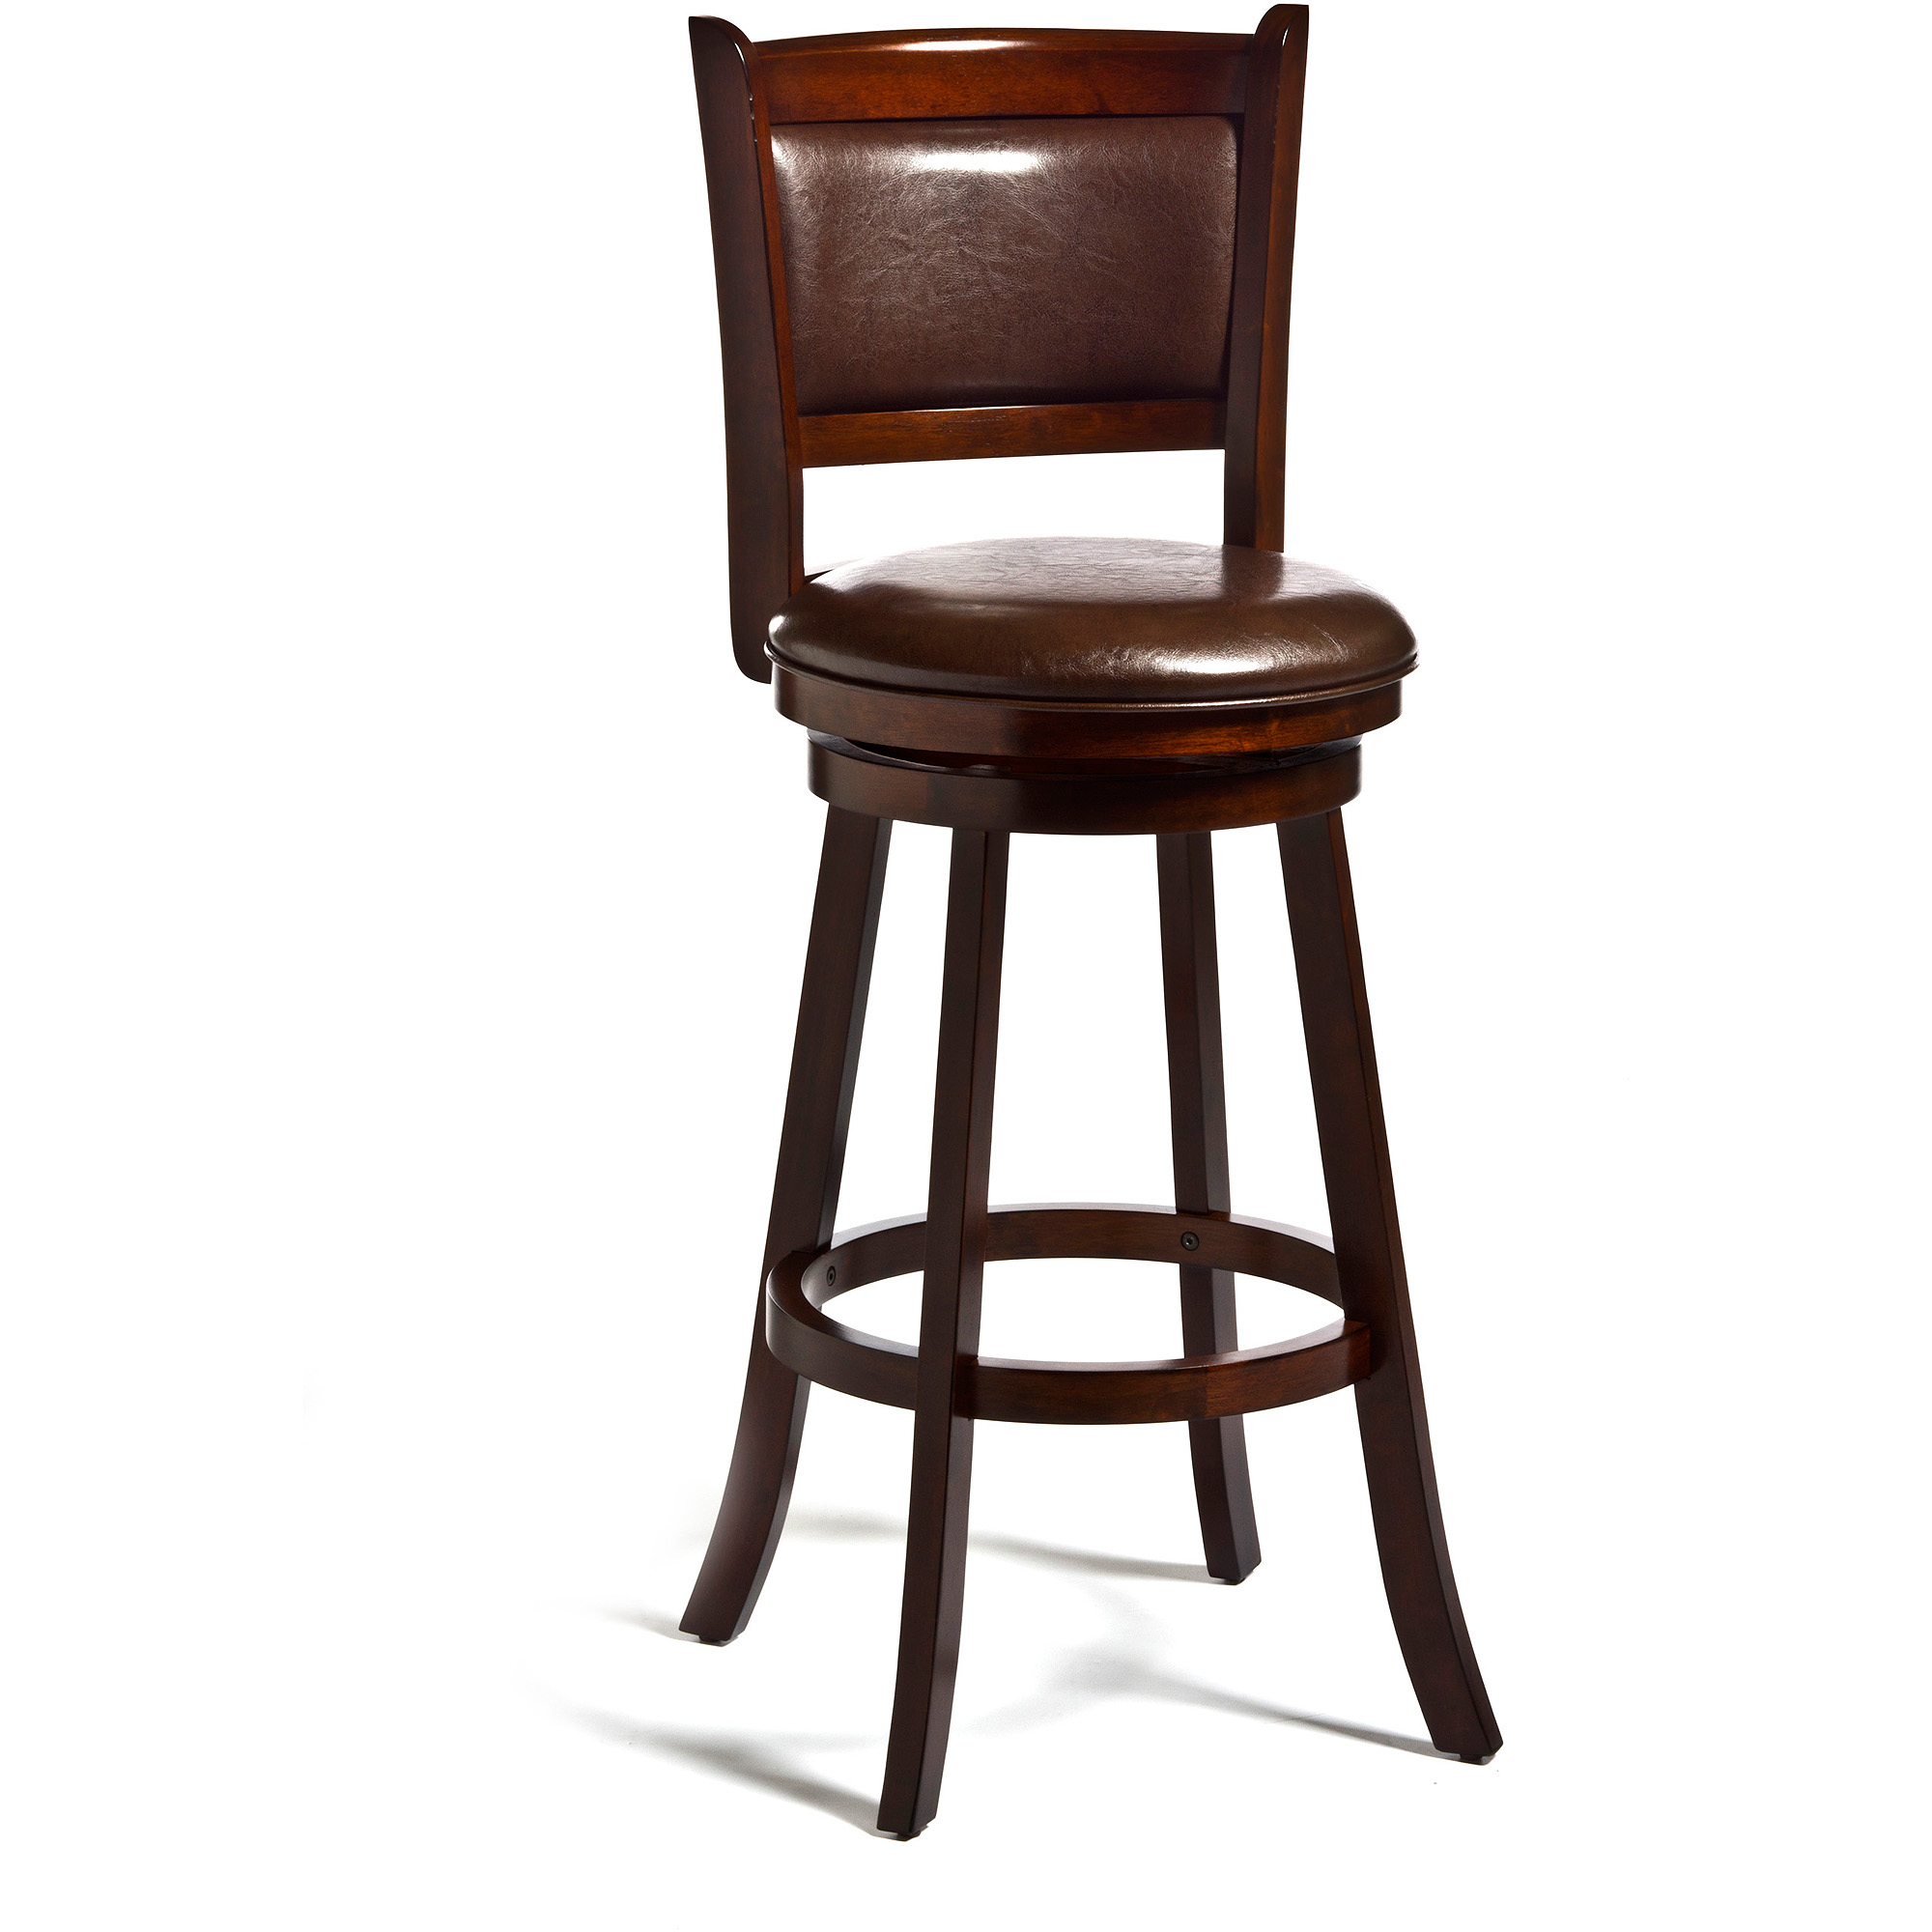 Hillsdale Dennery 24 in. Swivel Counter Stool Cherry by Hillsdale Furniture LLC